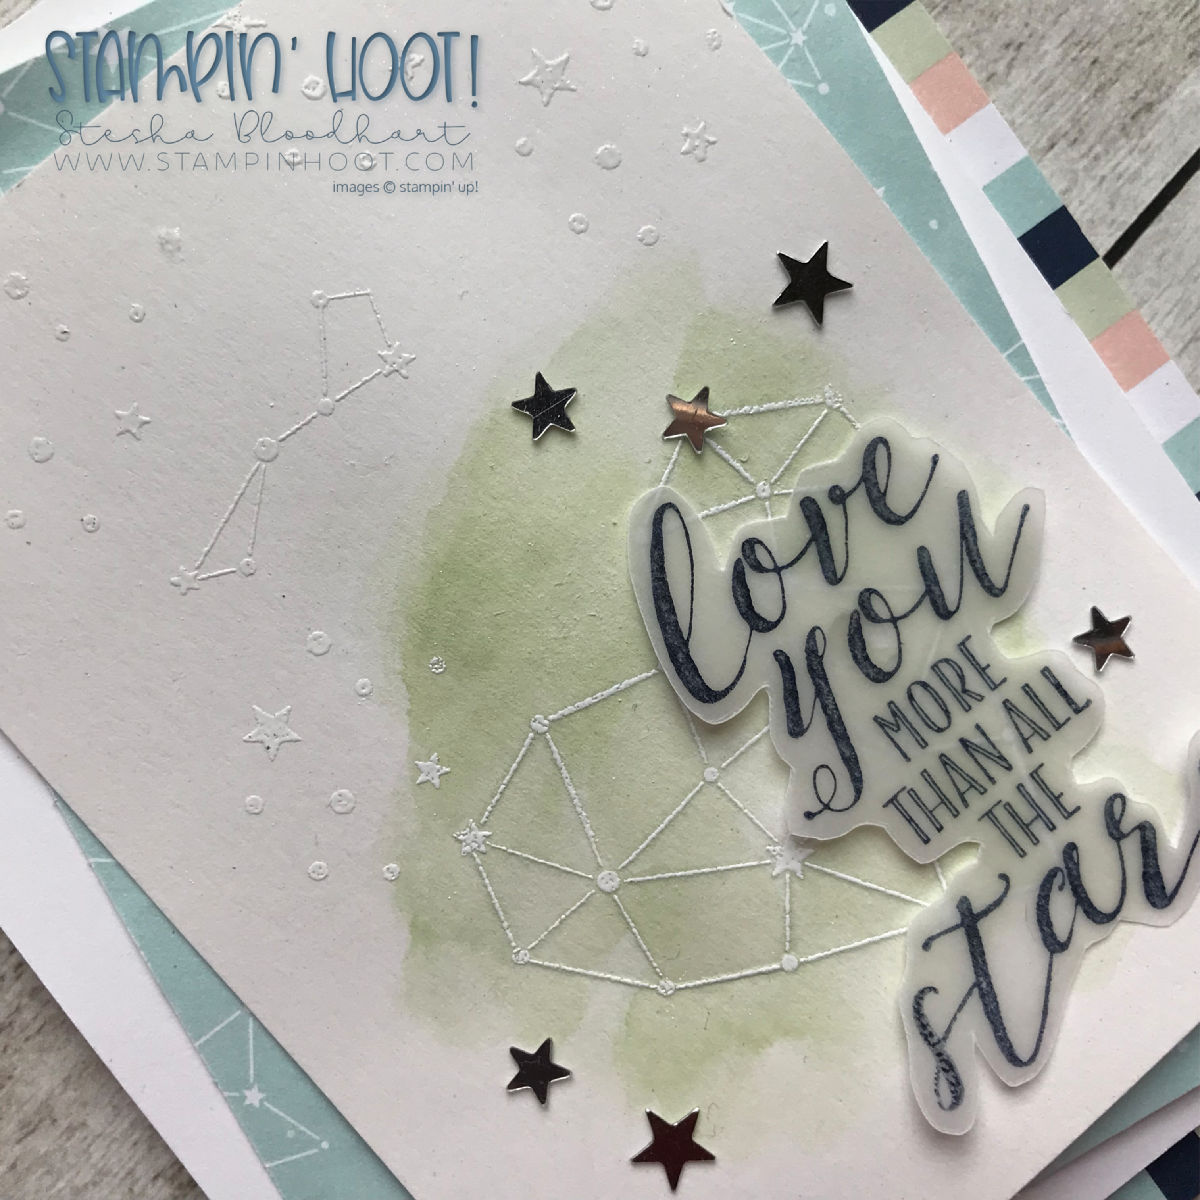 Little Twinkle Stamp Set by Stampin' Up! Card created by Stesha Bloodhart, Stampin' Hoot! #steshabloodhart #stampinhoot Stamp Review Crew